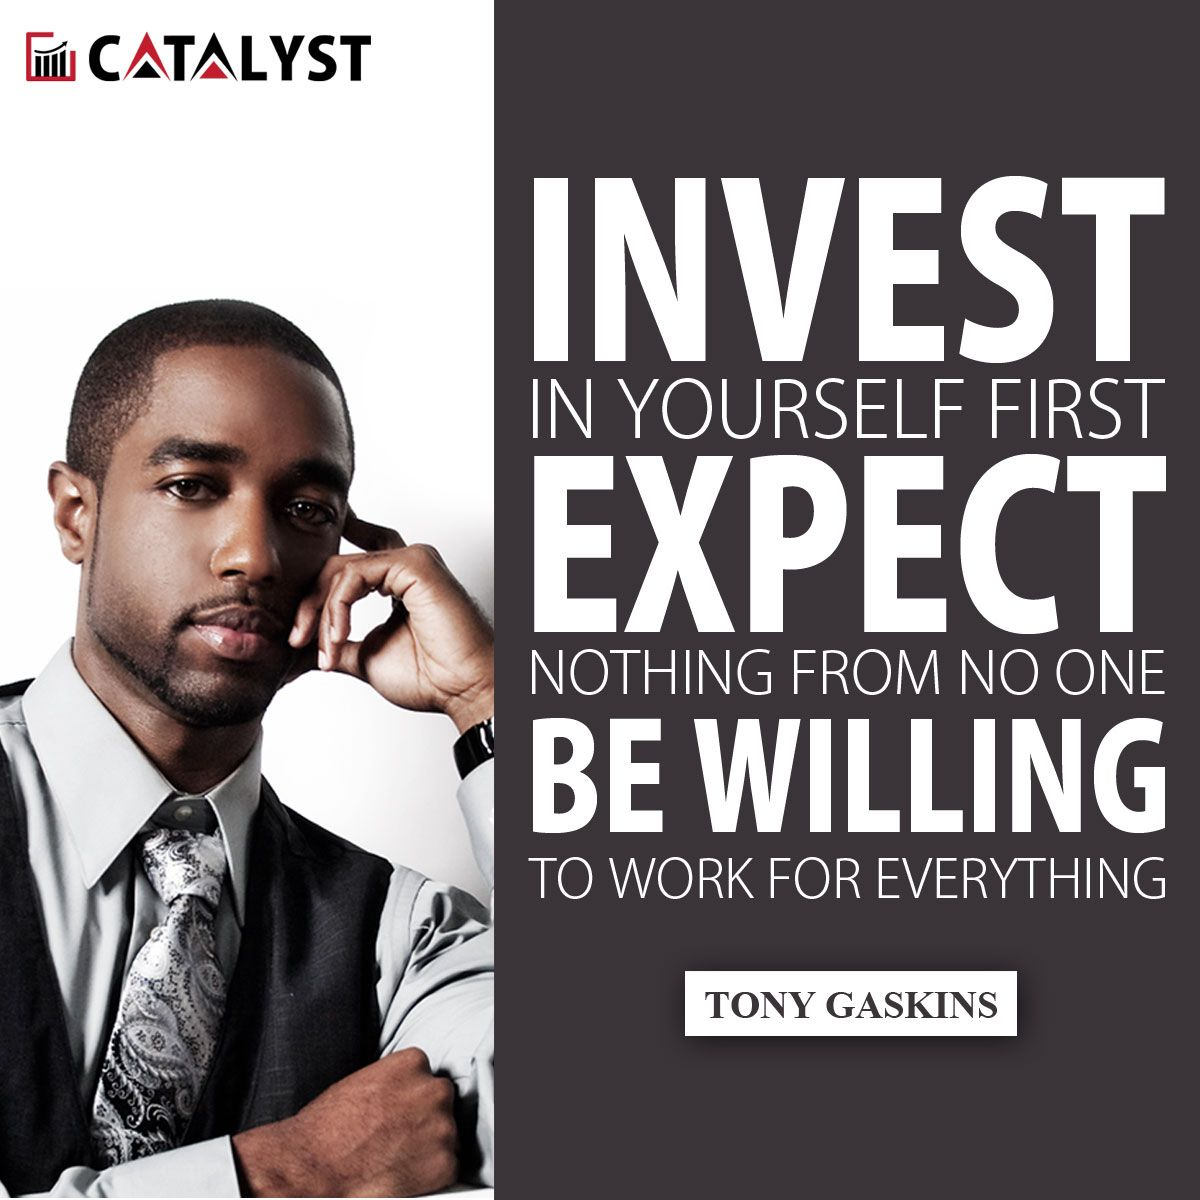 Tony gaskins invest in yourself first expect nothing from no one explore do it yourself investing and more solutioingenieria Images